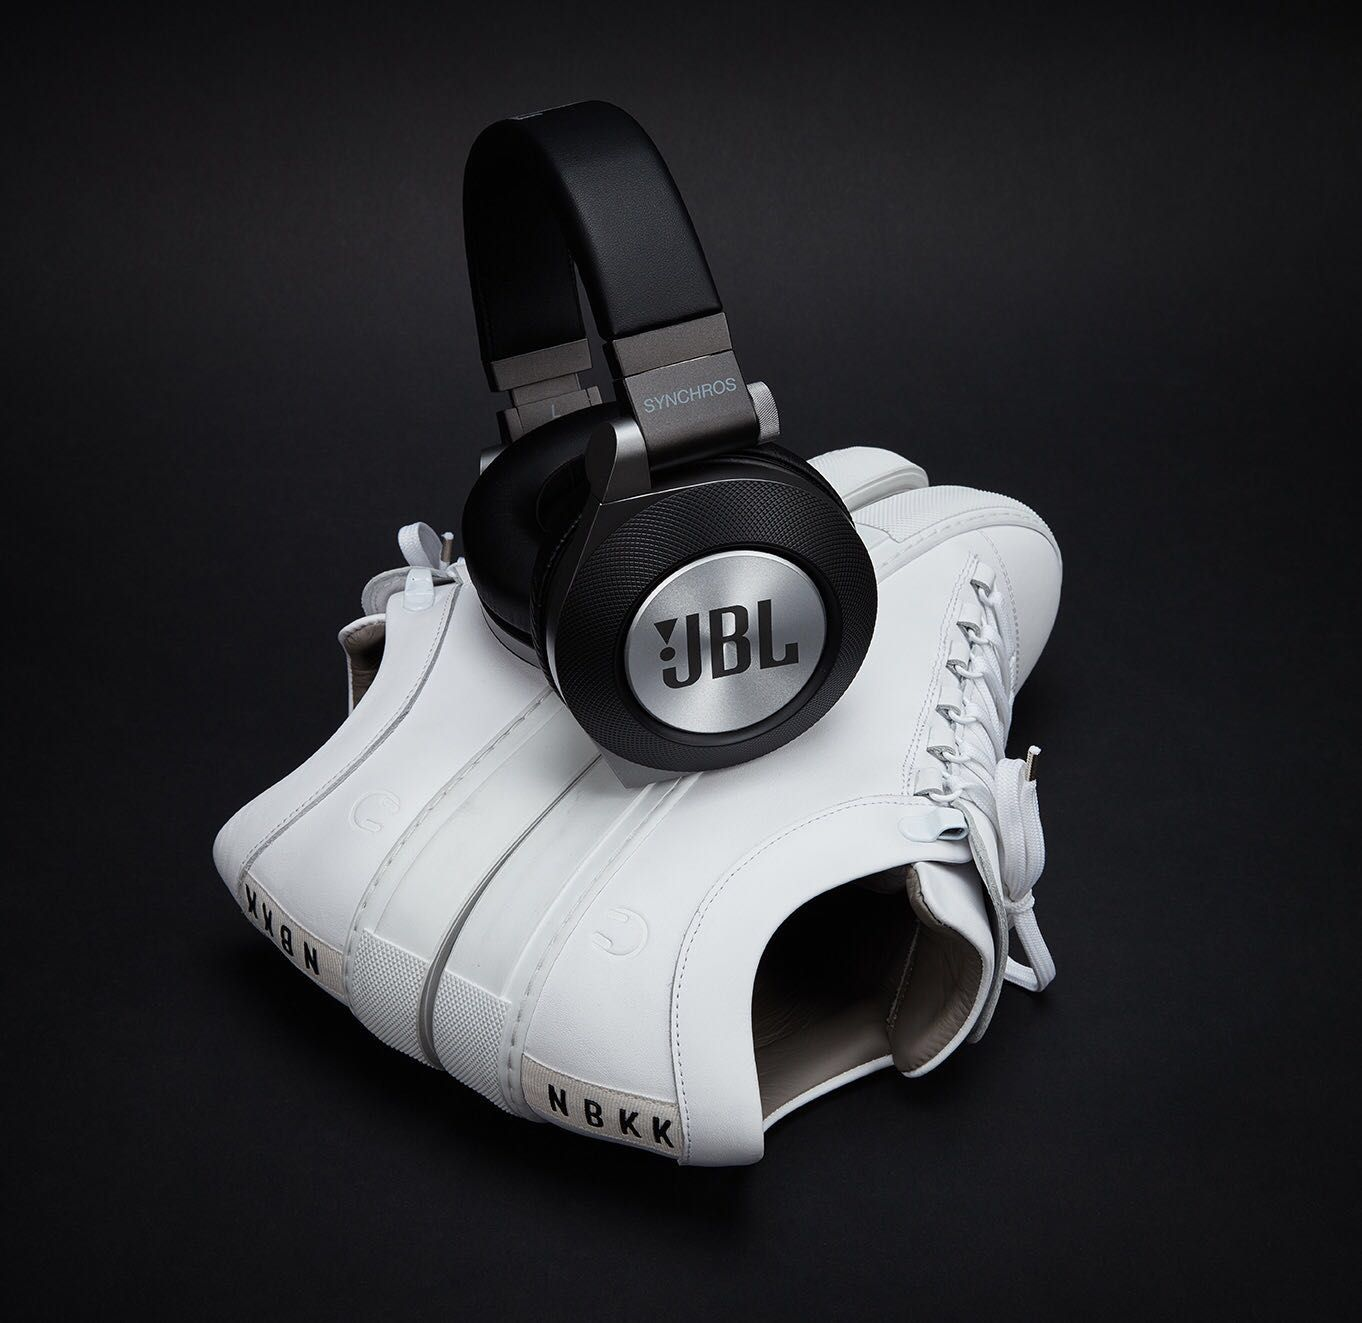 LIMITED EDITION JBL Headphones x Nubikk all white version sneaker model Jhay slick. https://dimagini.nl/nubikk-heren/ - Conceptstore DIMAGINI, Brugstraat 2 Groningen